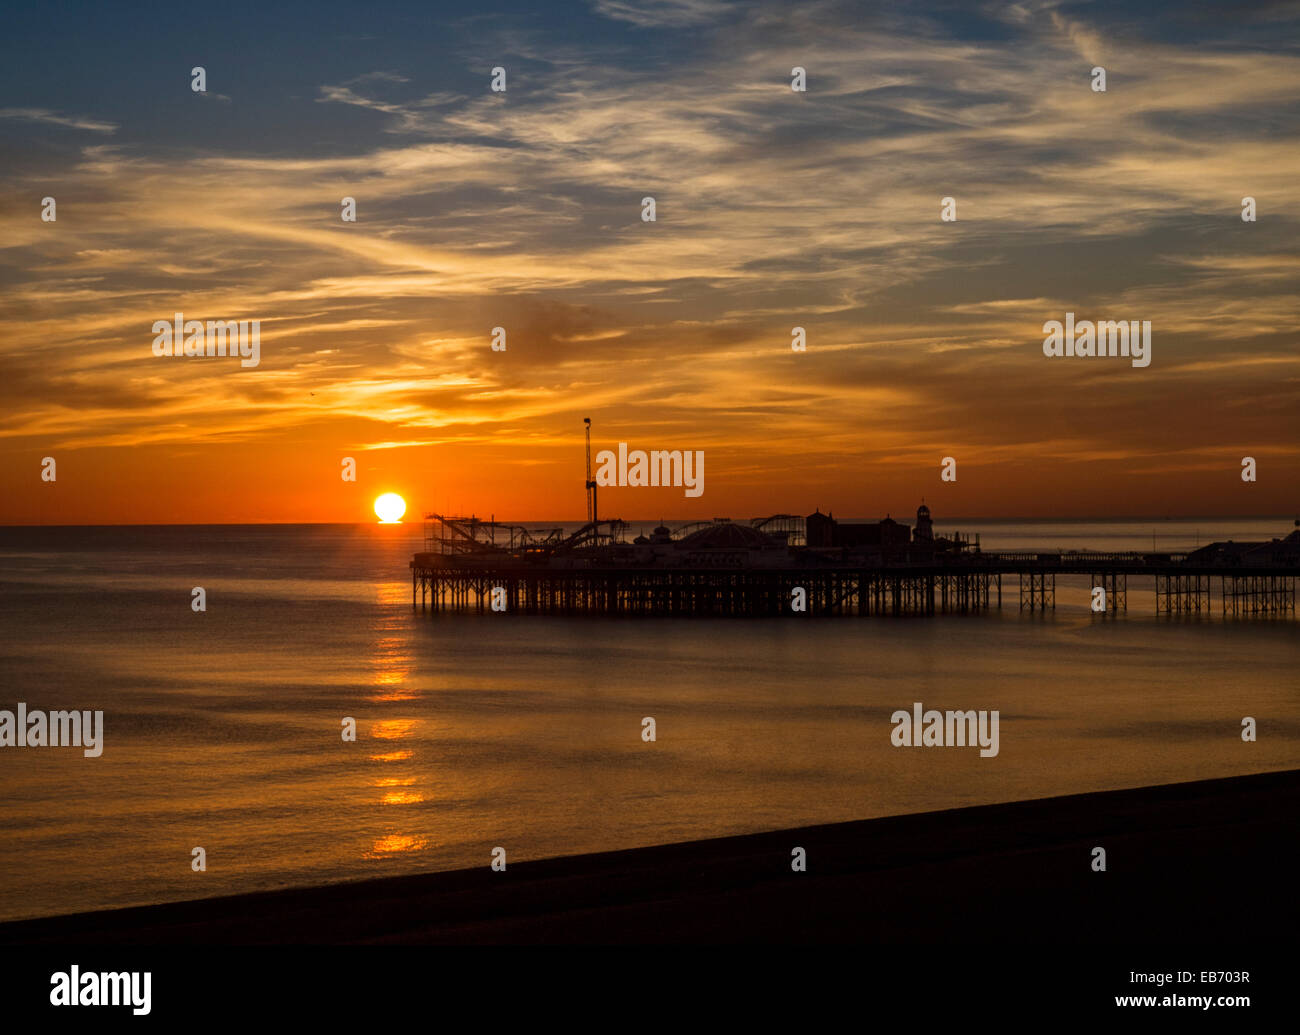 Sunset over Brighton Pier, England, UK - Stock Image